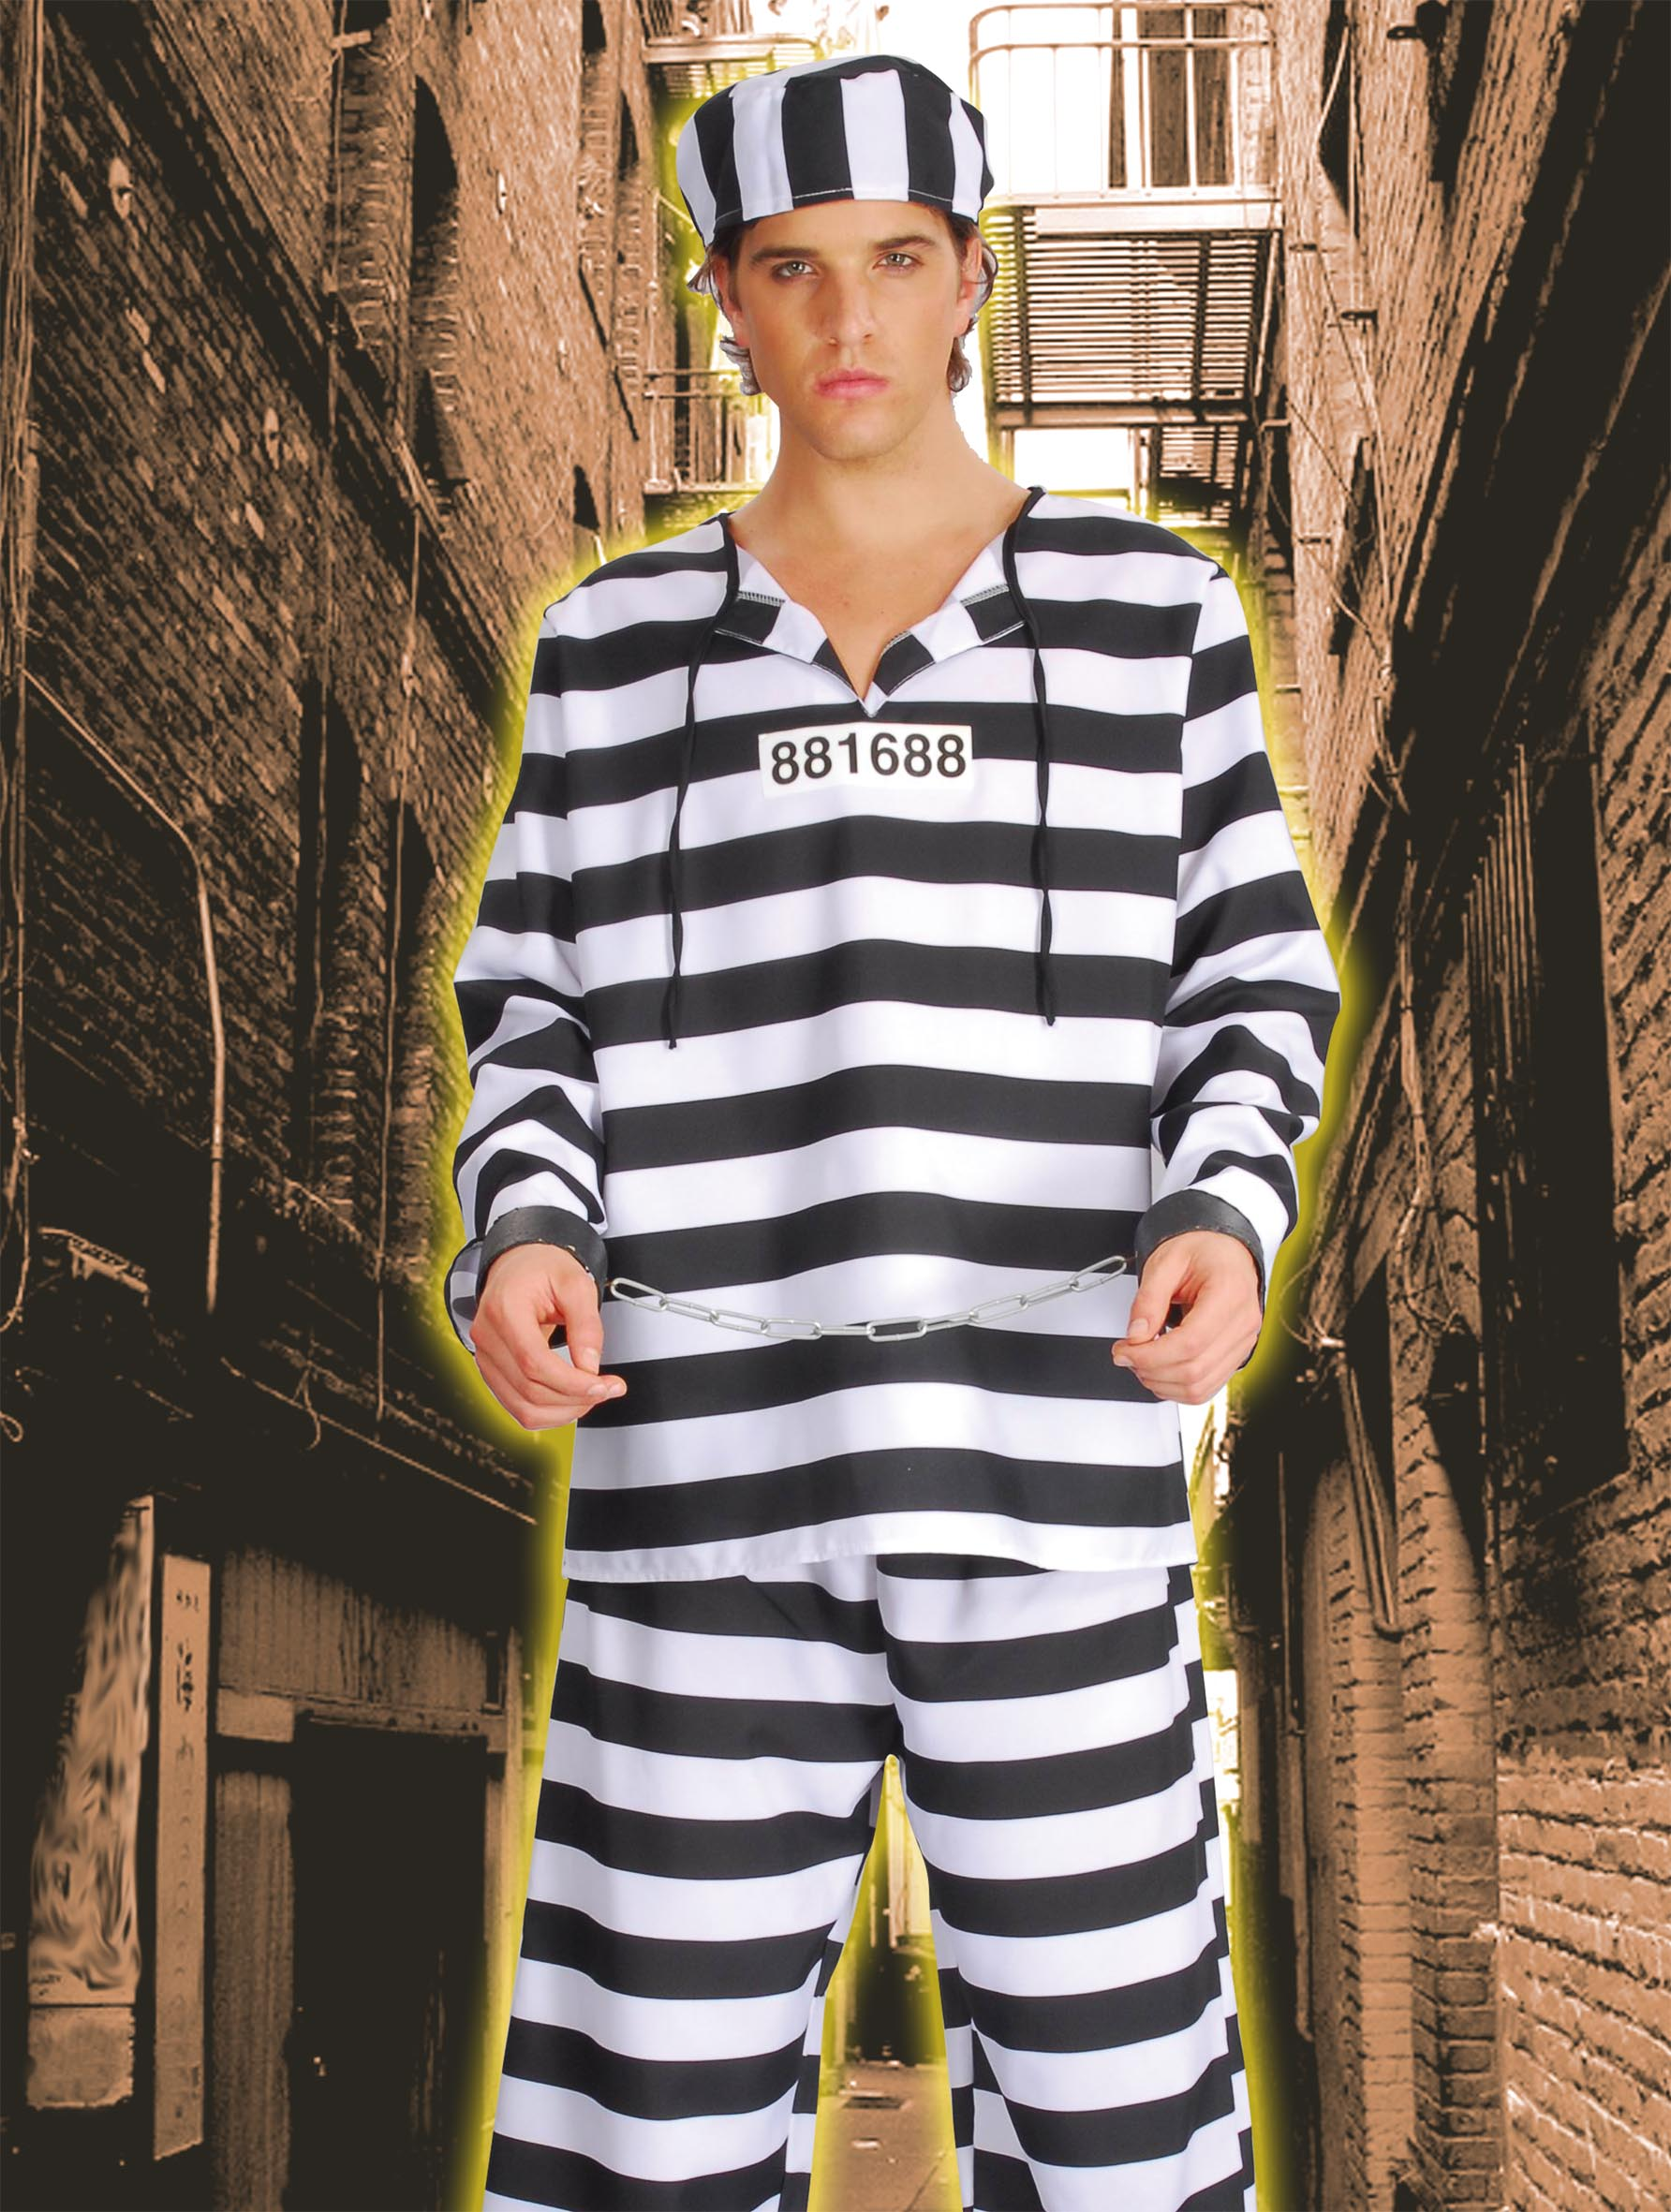 COSTUME CARCERATO ADULTO 62019